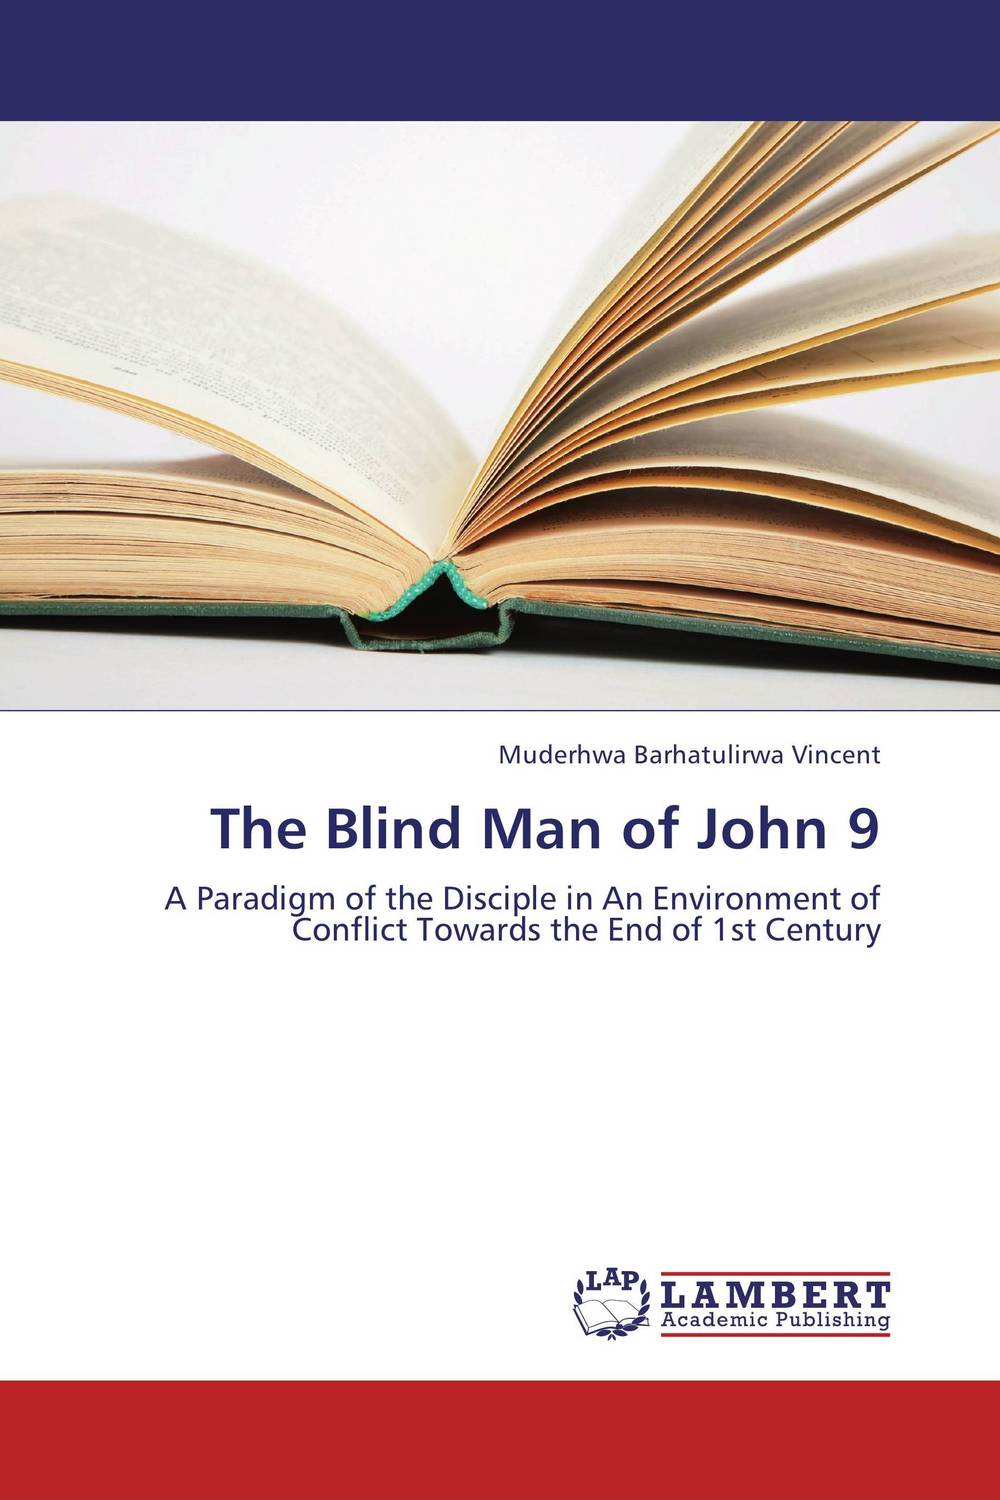 The Blind Man of John 9 darkness and light